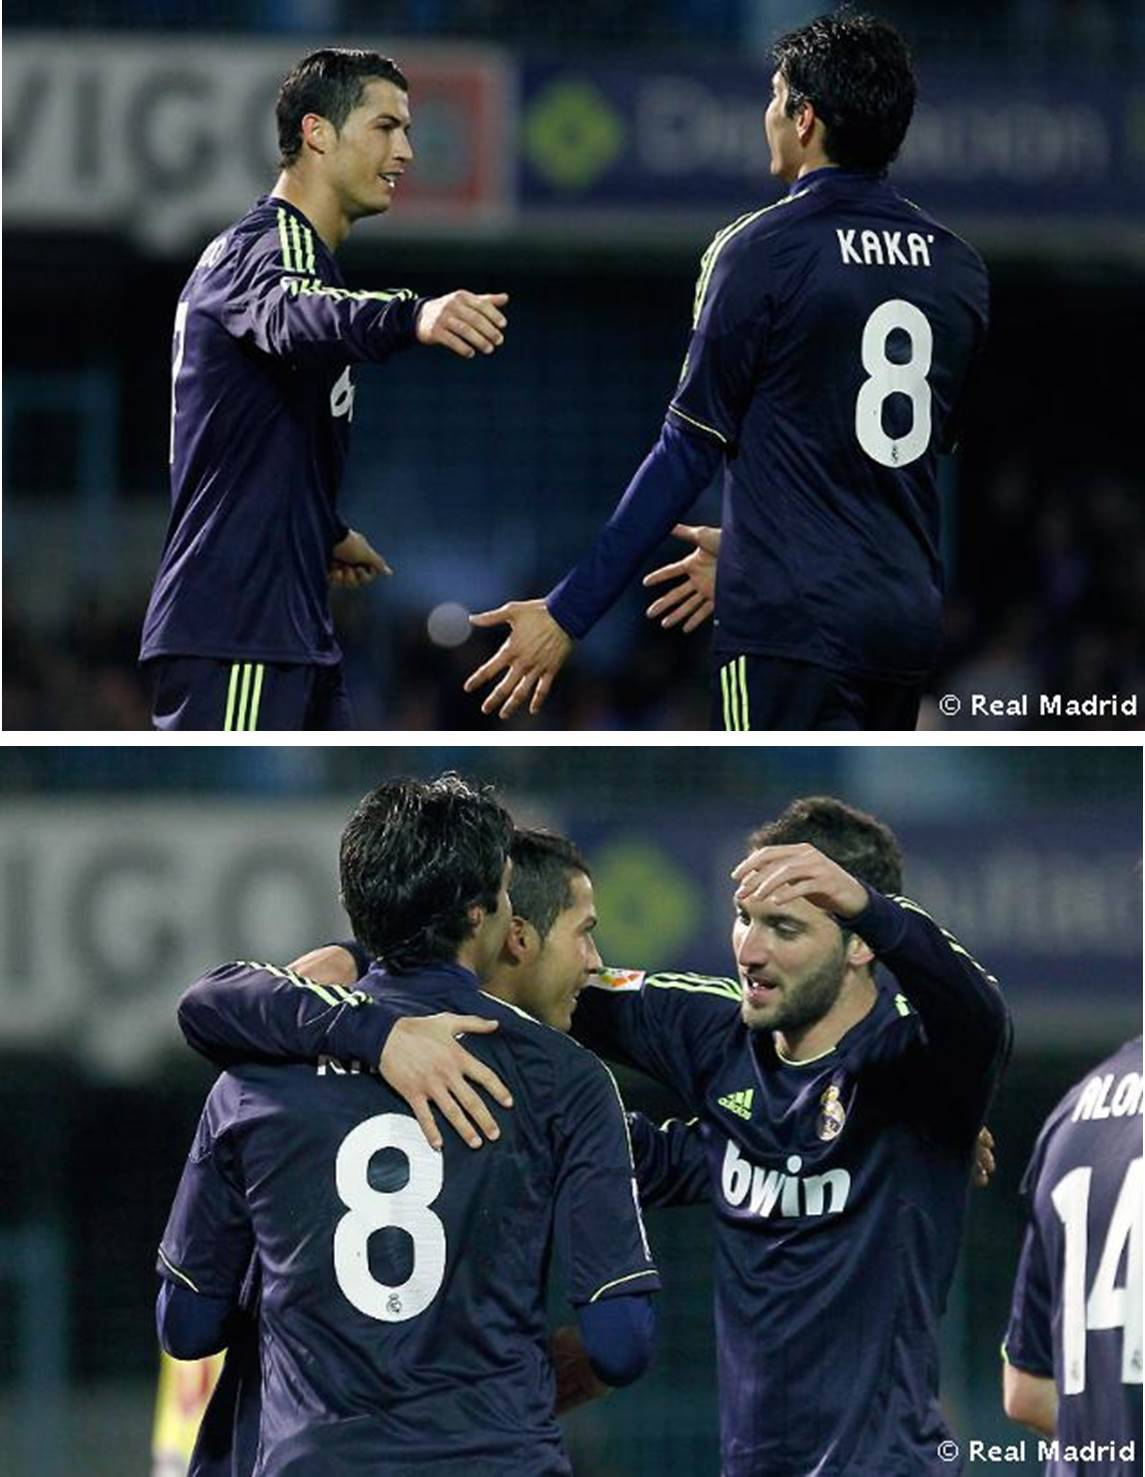 Celebrating a kind of CrisKa goal: Foul vs. Kaká - penalty goal Cristiano ♥ Celta de Vigo vs. Real Madrid 1:2, 10.03.2013 (62' + 72' Cristiano Ronaldo / 63' Aspas )